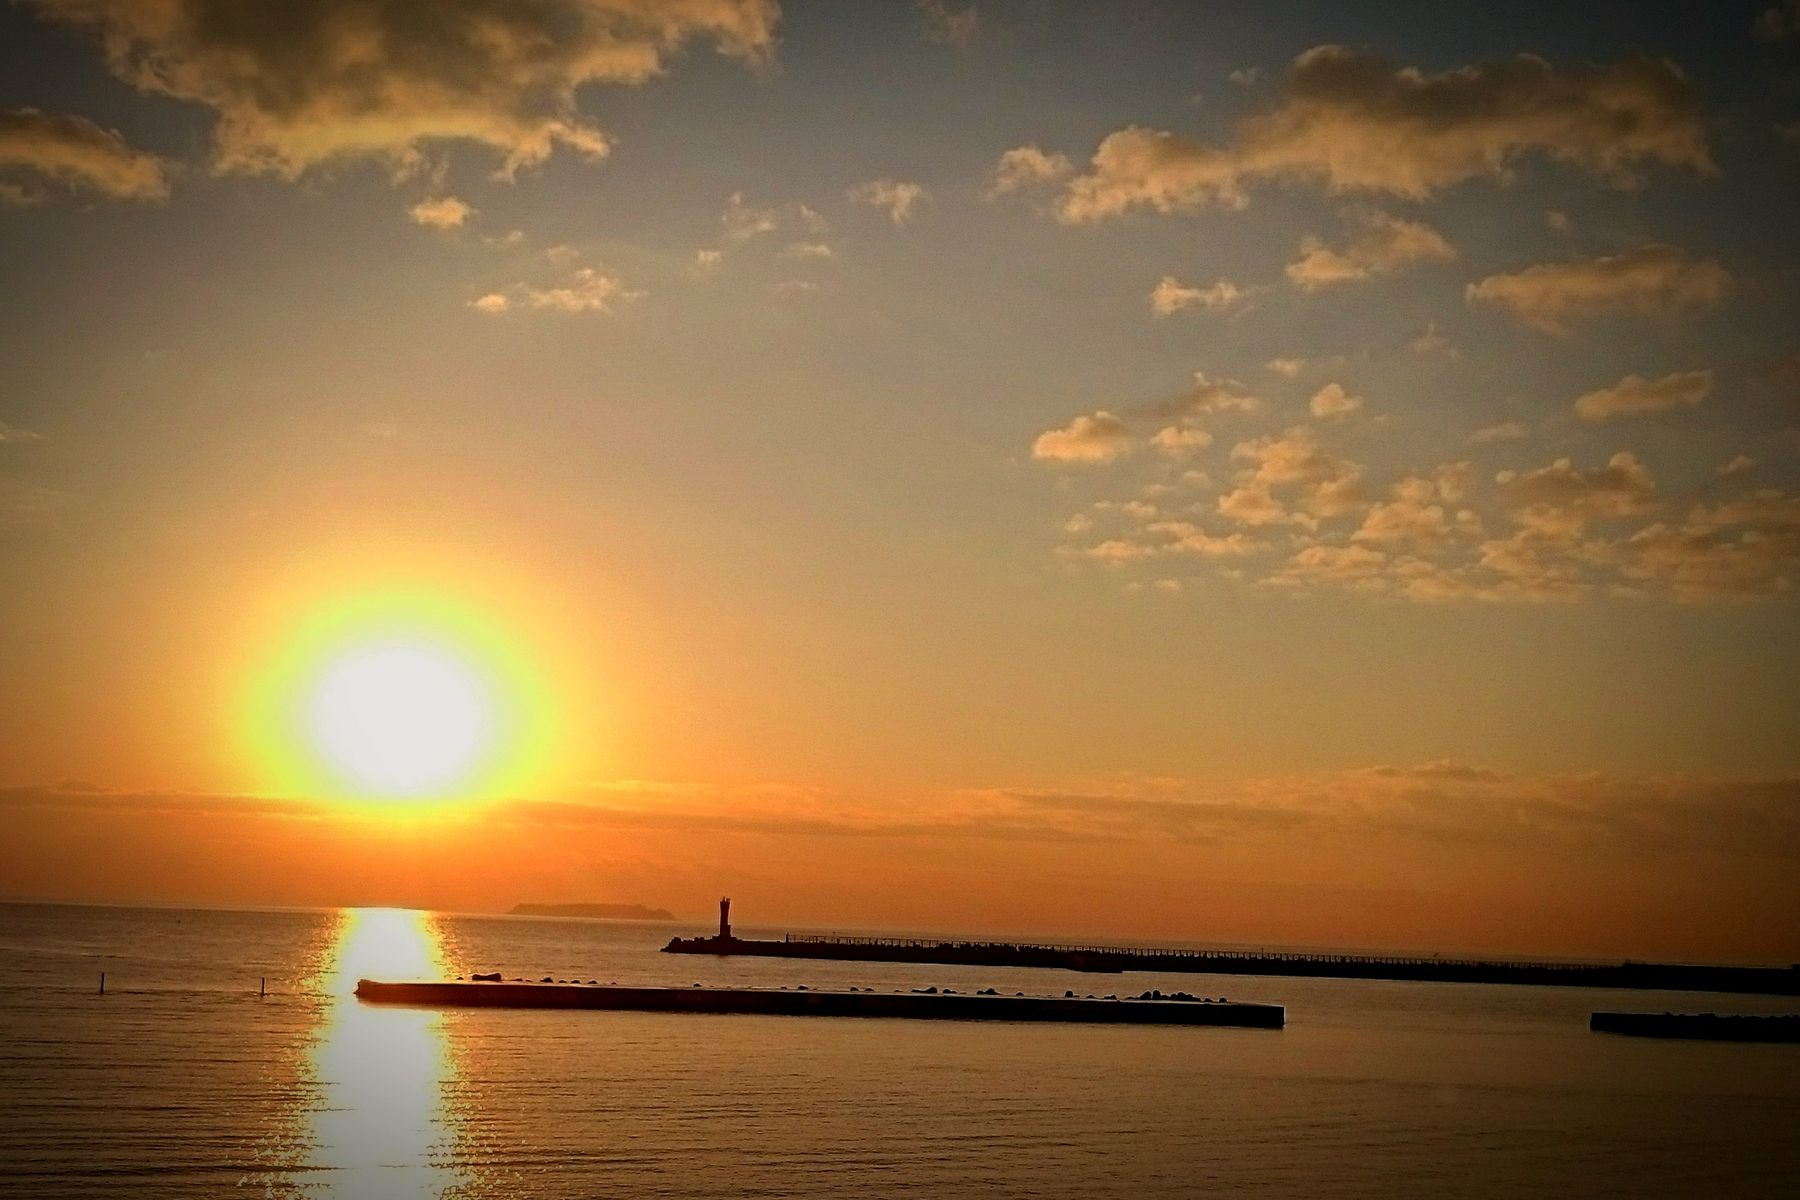 Sunset Sun Sea Reflection Silhouette Water Horizon Over Water Scenics Sky Sunlight Cloud - Sky Beauty In Nature Nature Tranquility Travel Destinations Beach Tranquil Scene Nautical Vessel Outdoors No People 港 太平洋 Japan